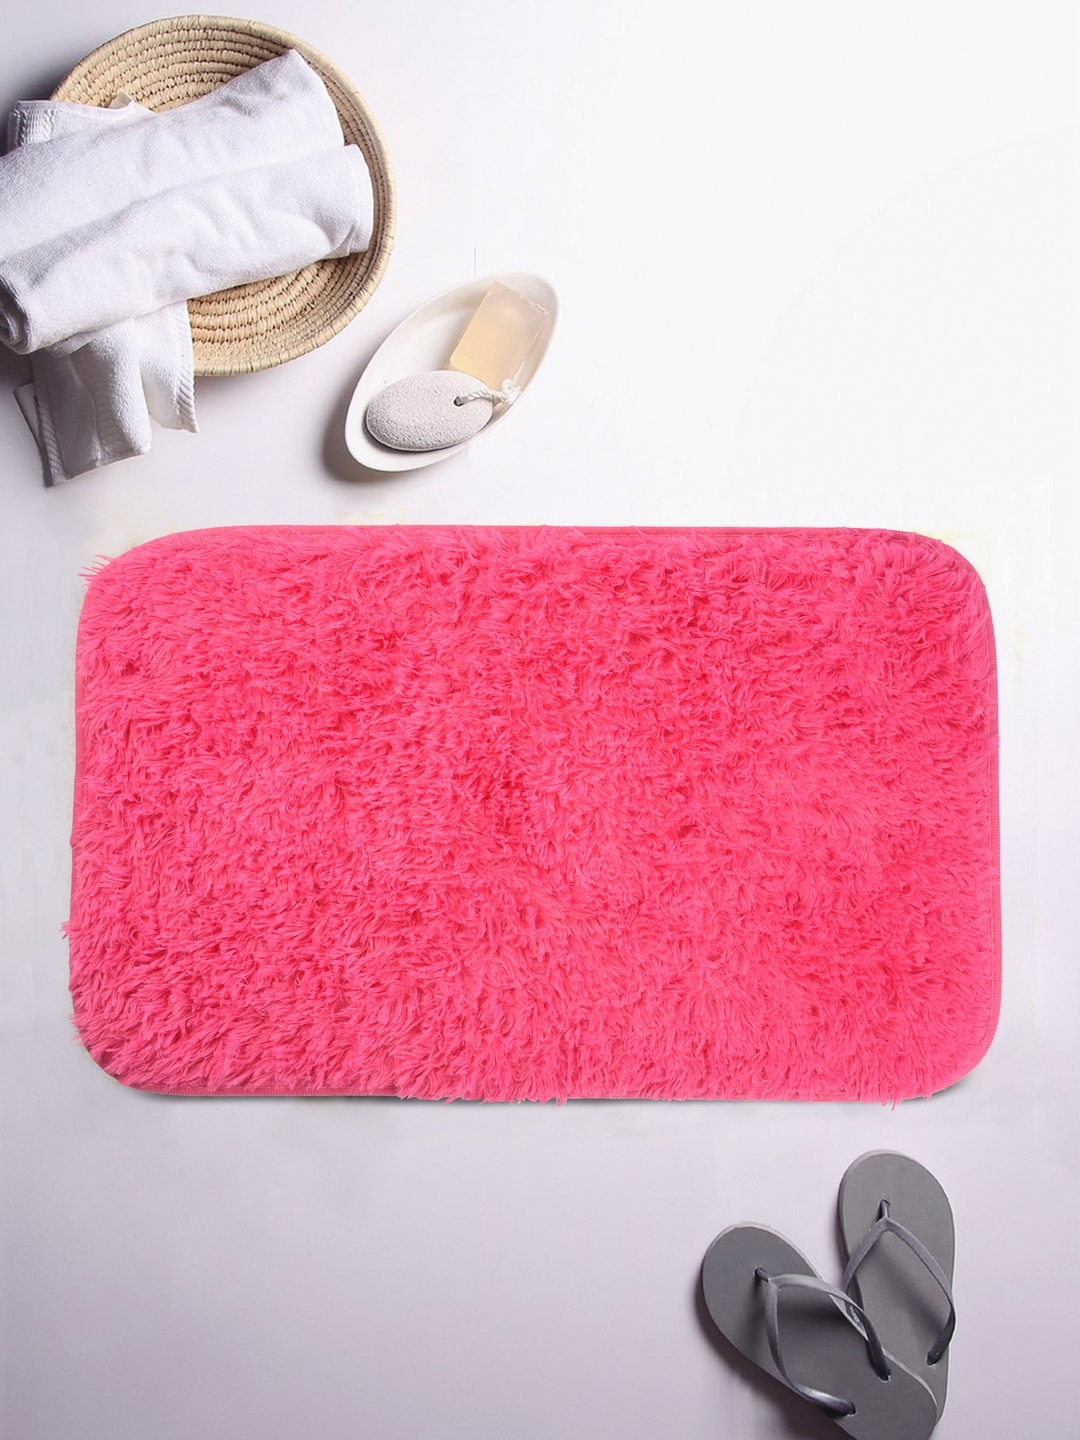 Cortina Pink Ruffled Rectangular Bath Rug image